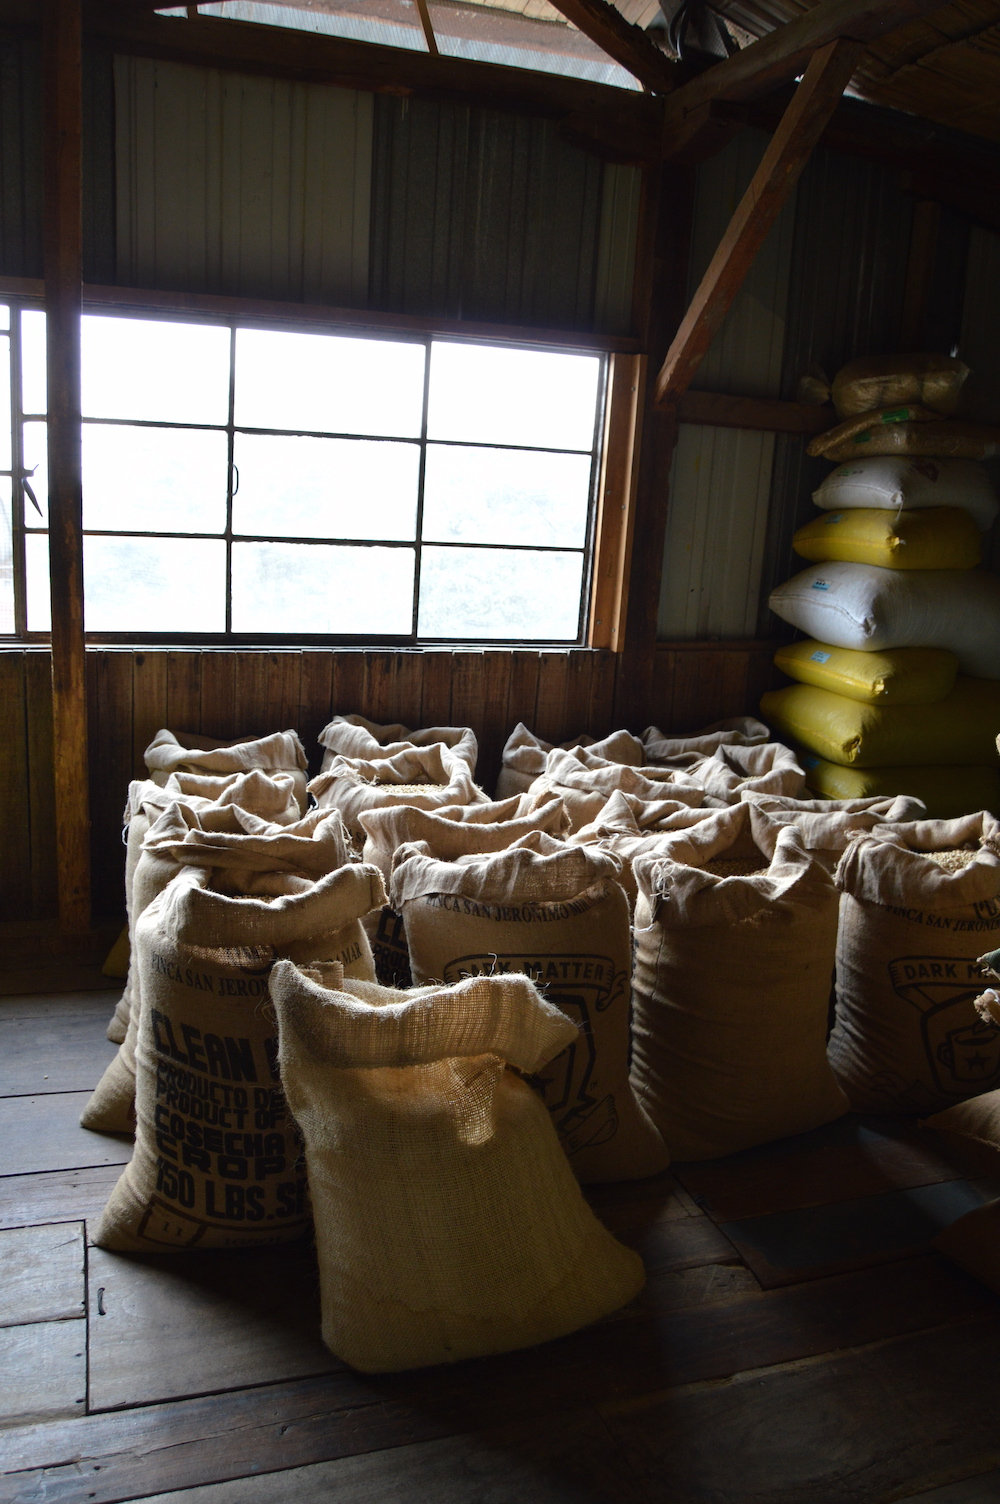 Bags of coffee at Finca San Jerónimo Miramar